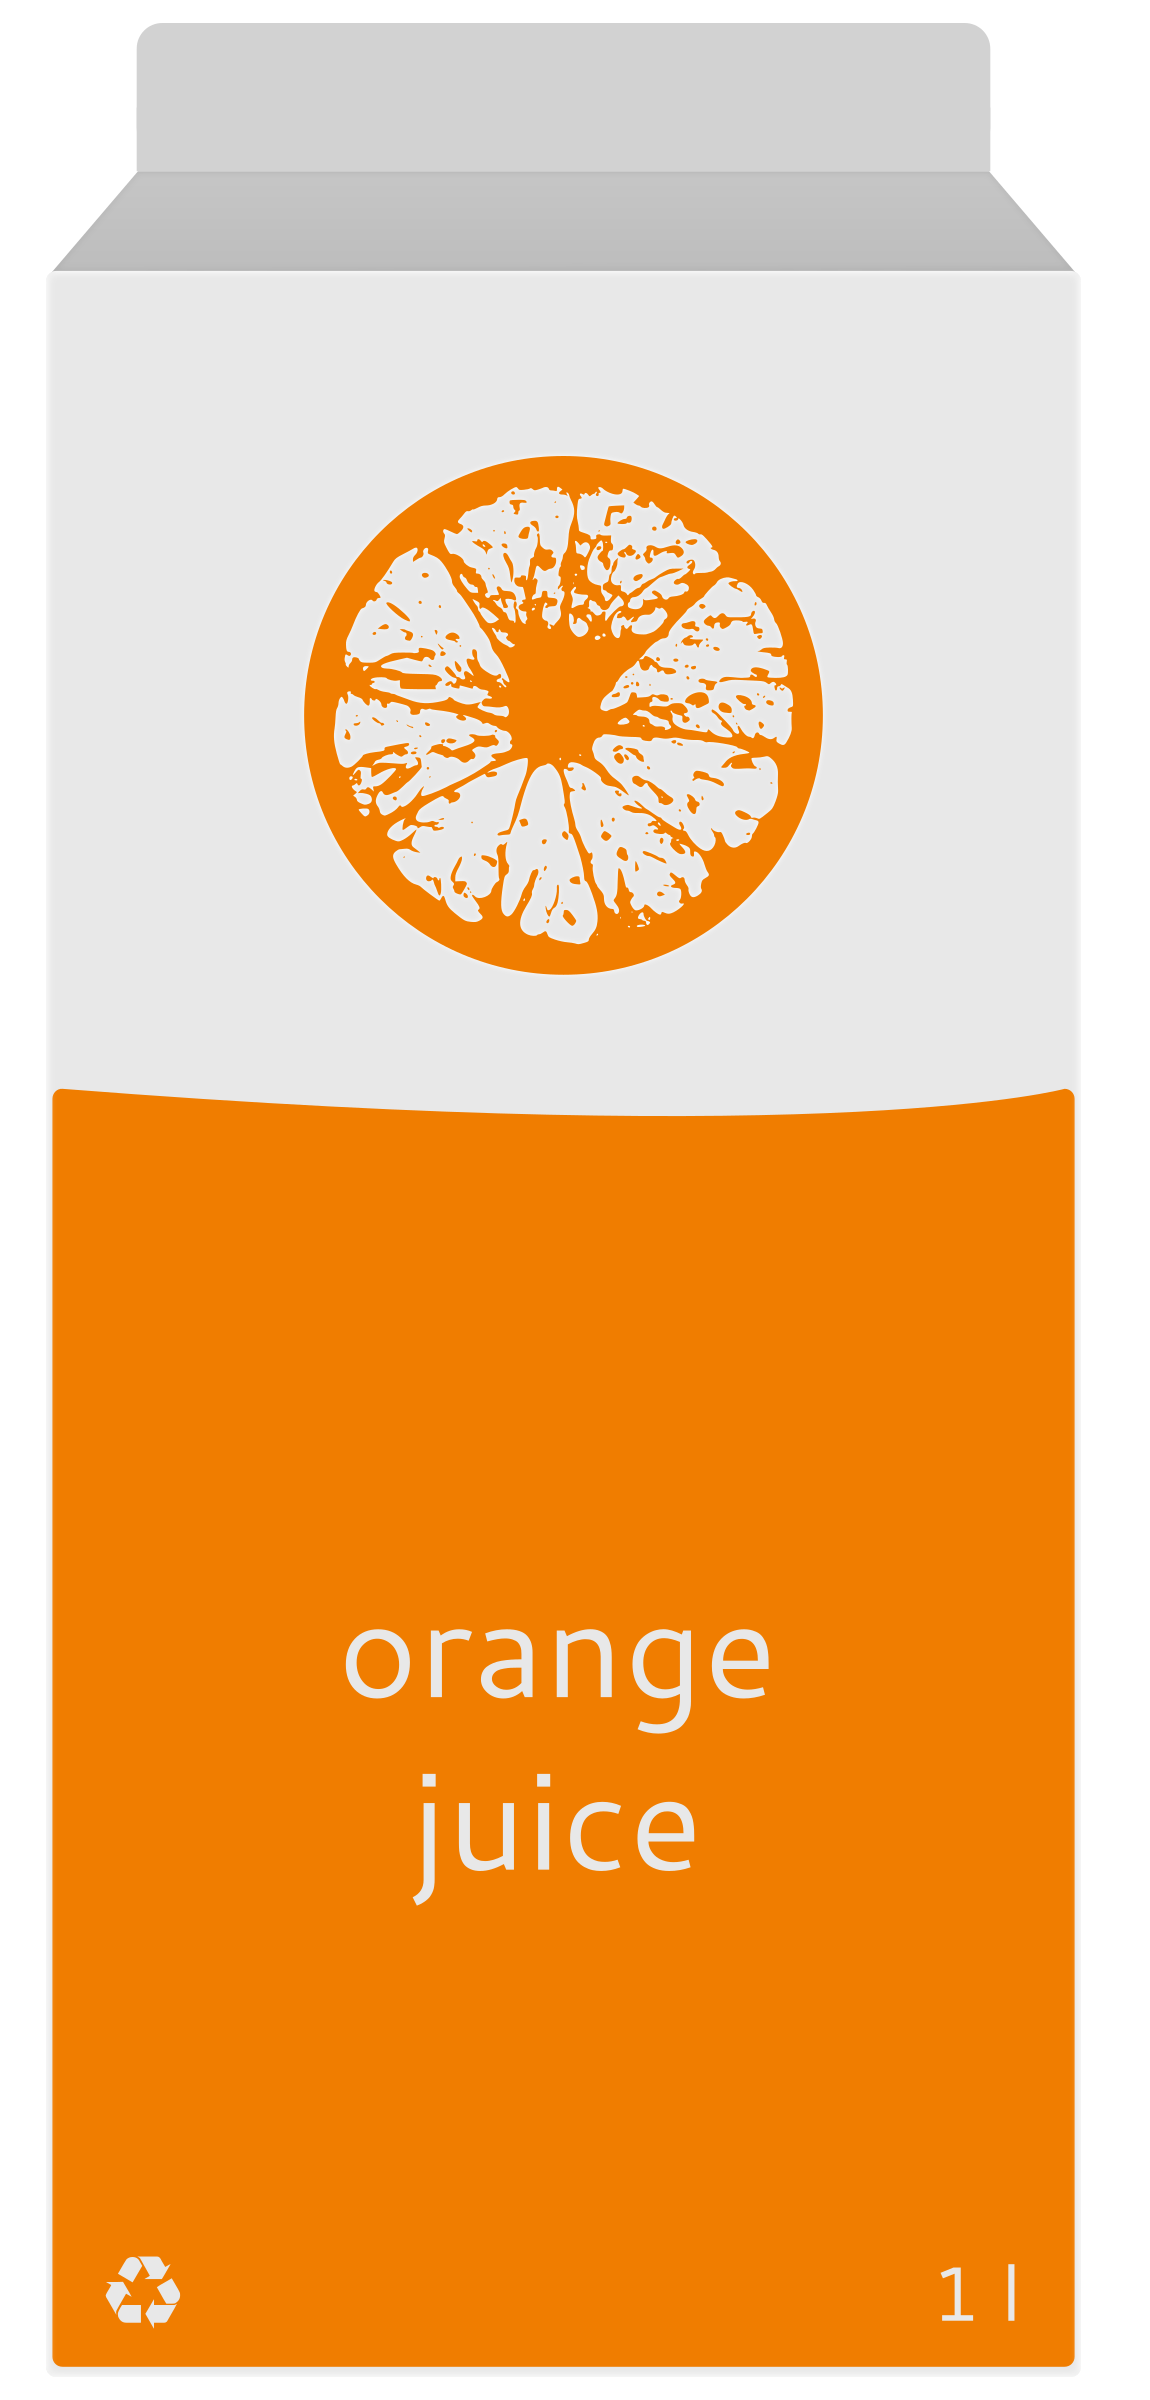 Lemons clipart lamon. Orange juice carton icons